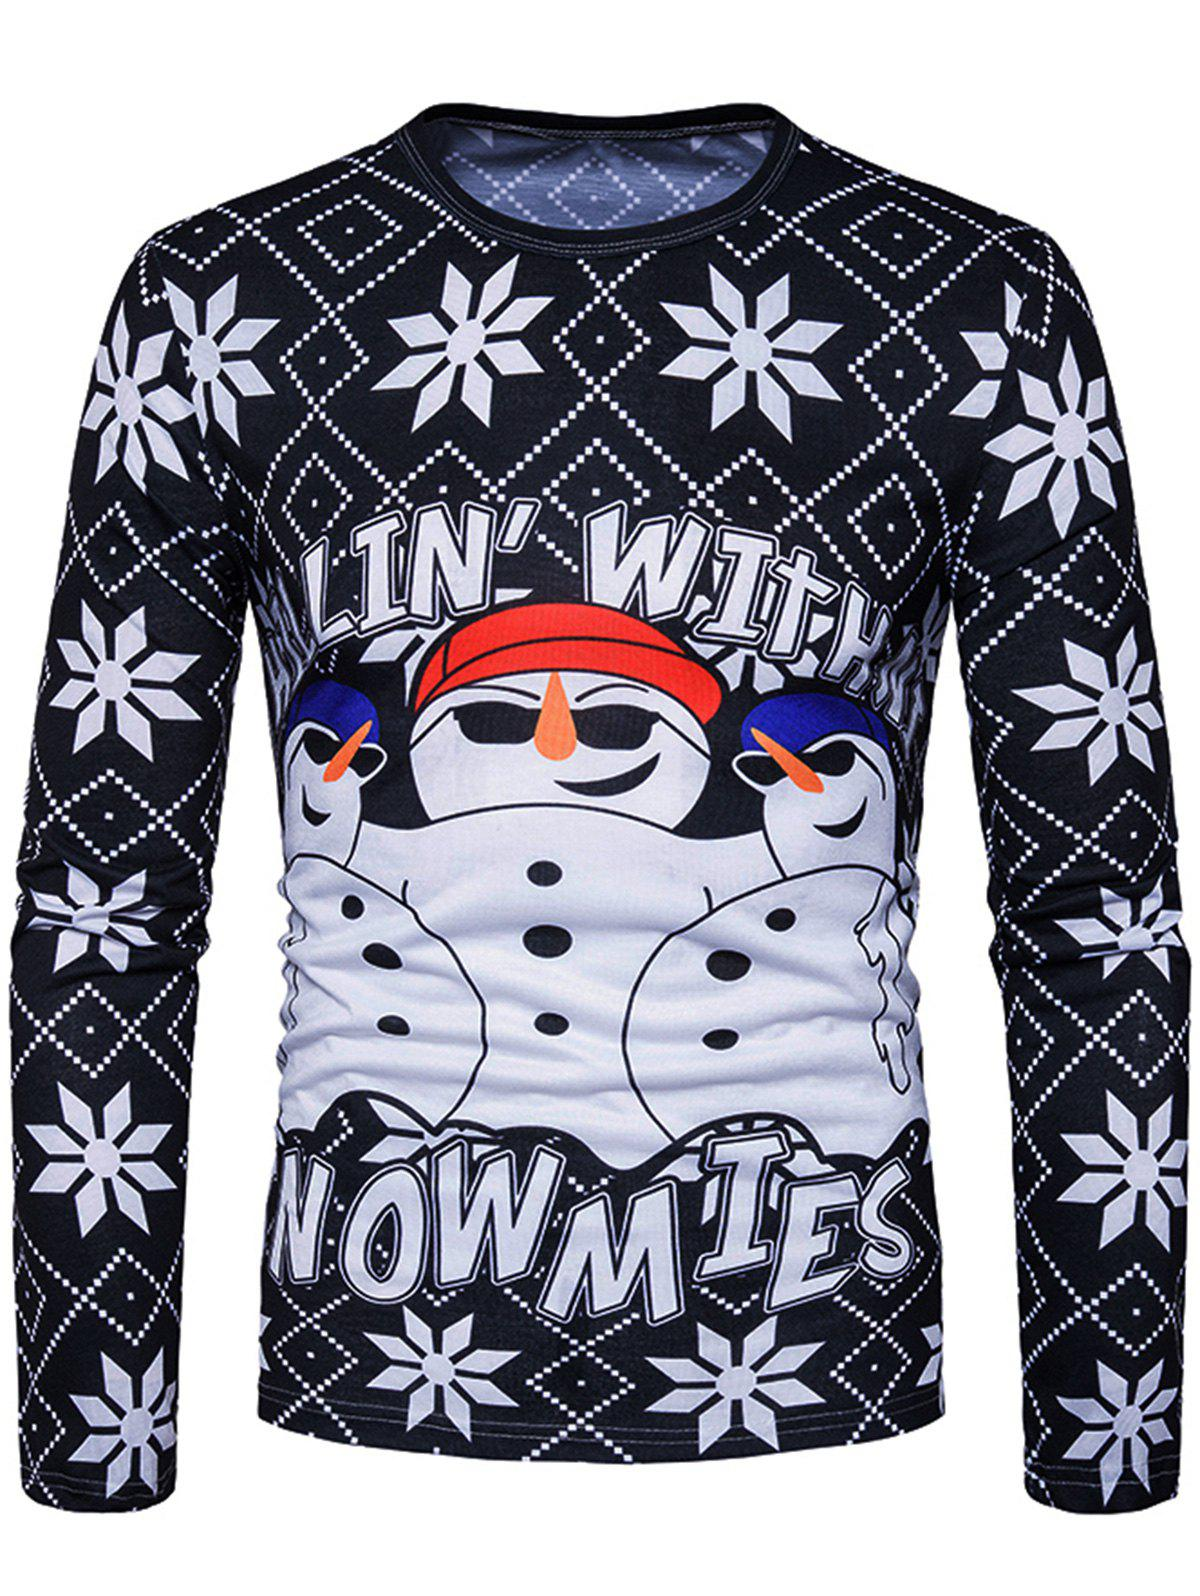 3D Snowman Graphic Print T-shirtMEN<br><br>Size: L; Color: BLACK; Material: Cotton,Polyester; Sleeve Length: Full; Collar: Crew Neck; Style: Casual,Fashion,Streetwear; Pattern Type: 3D,Character,Letter; Season: Fall; Weight: 0.3000kg; Package Contents: 1 x T-shirt;